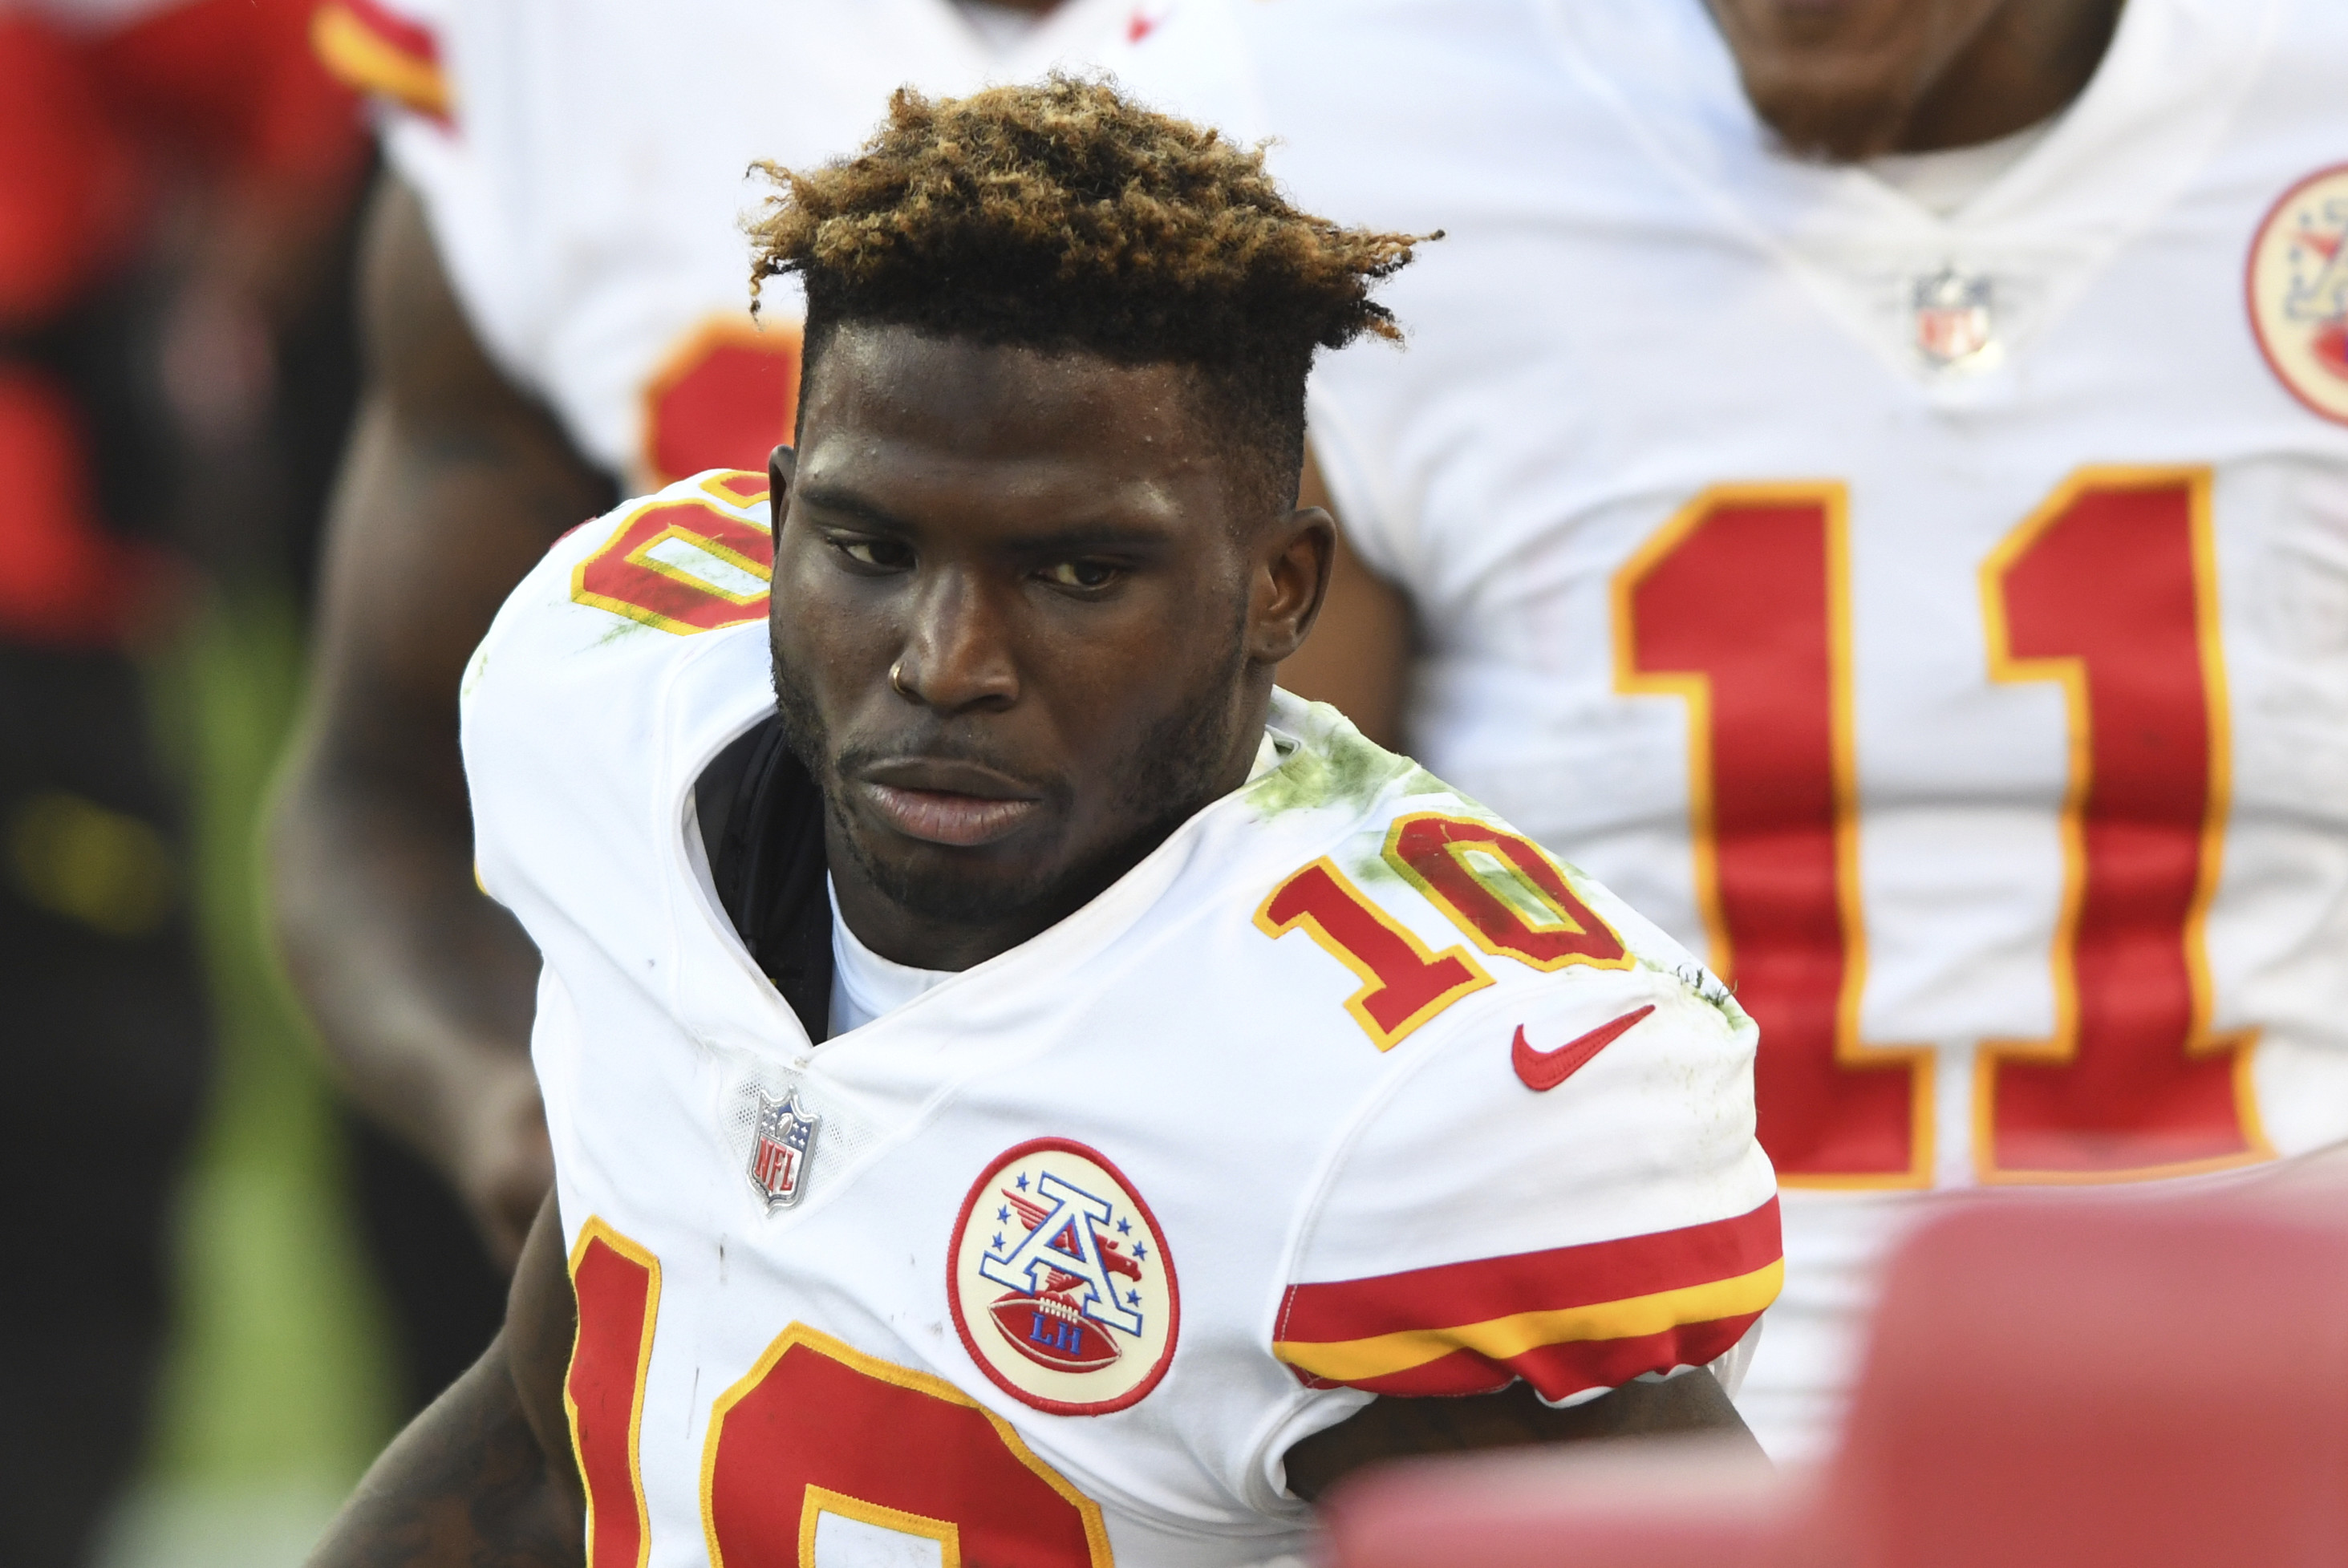 Tyreek Hill Says Chiefs Want 20-0 Season: 'That's What We're Shooting For'